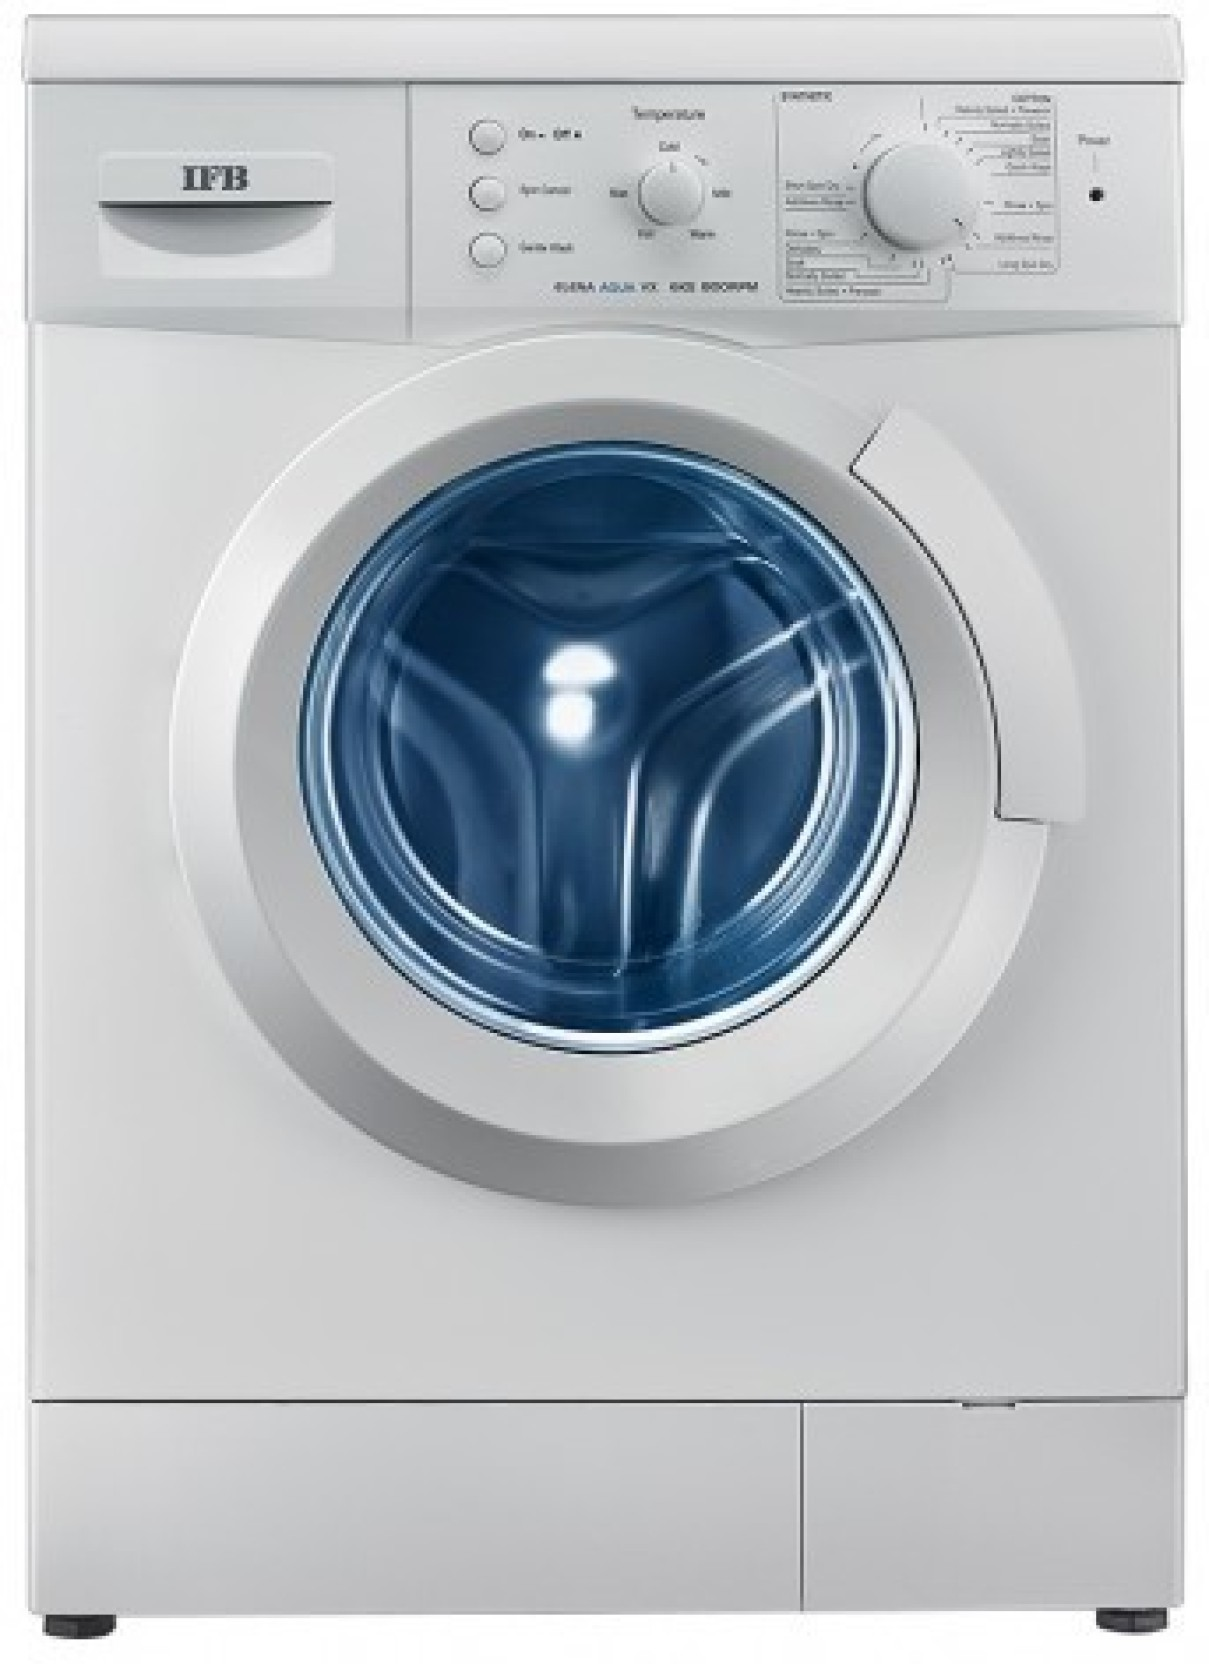 Elena Aqua Vx Giftsforsubs Ifb Washing Machine Wiring Diagram 6 Kg Fully Automat